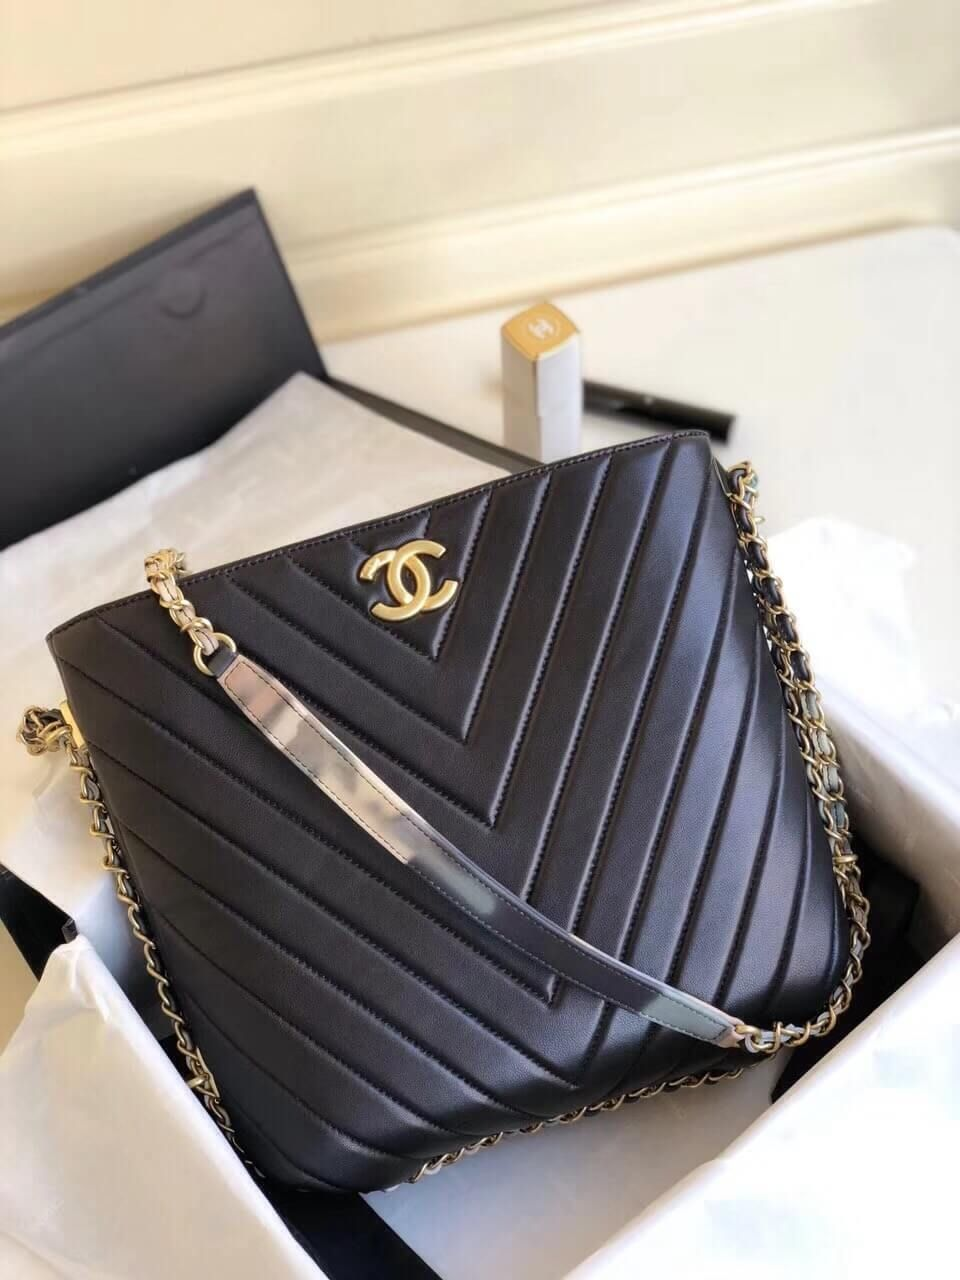 72ae8ceff2af Chanel Chevron Leahter Multicolor Chain Bucket Bag Black 2018 ...